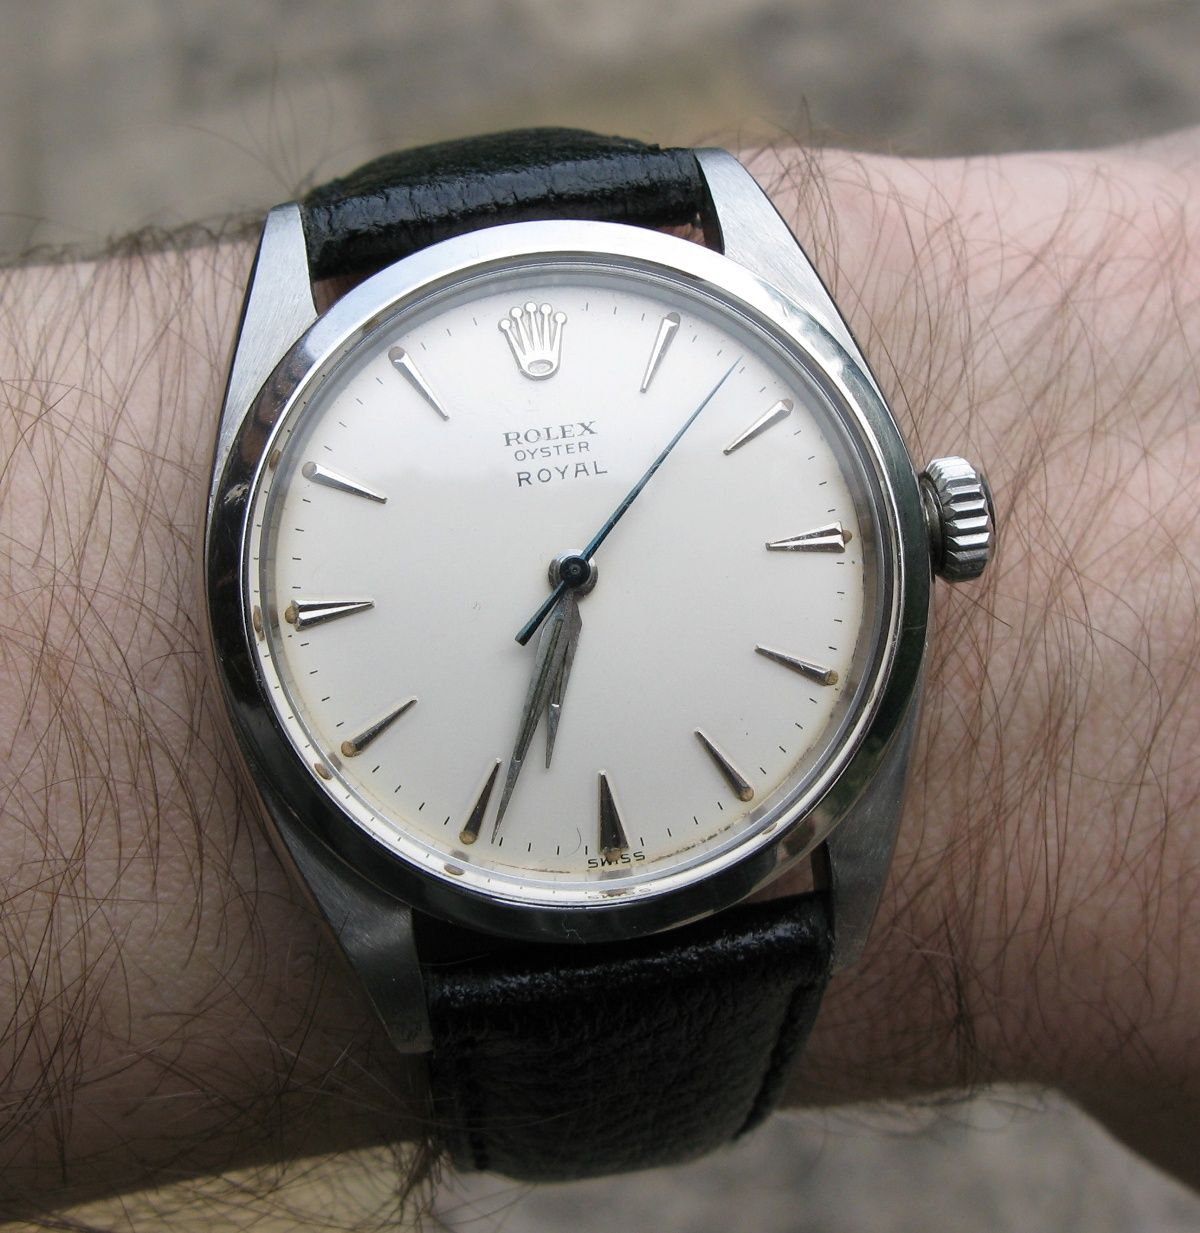 Vintage rolex oyster royal white gold in black leather strap watchmaker pinterest for Vintage rolex oyster